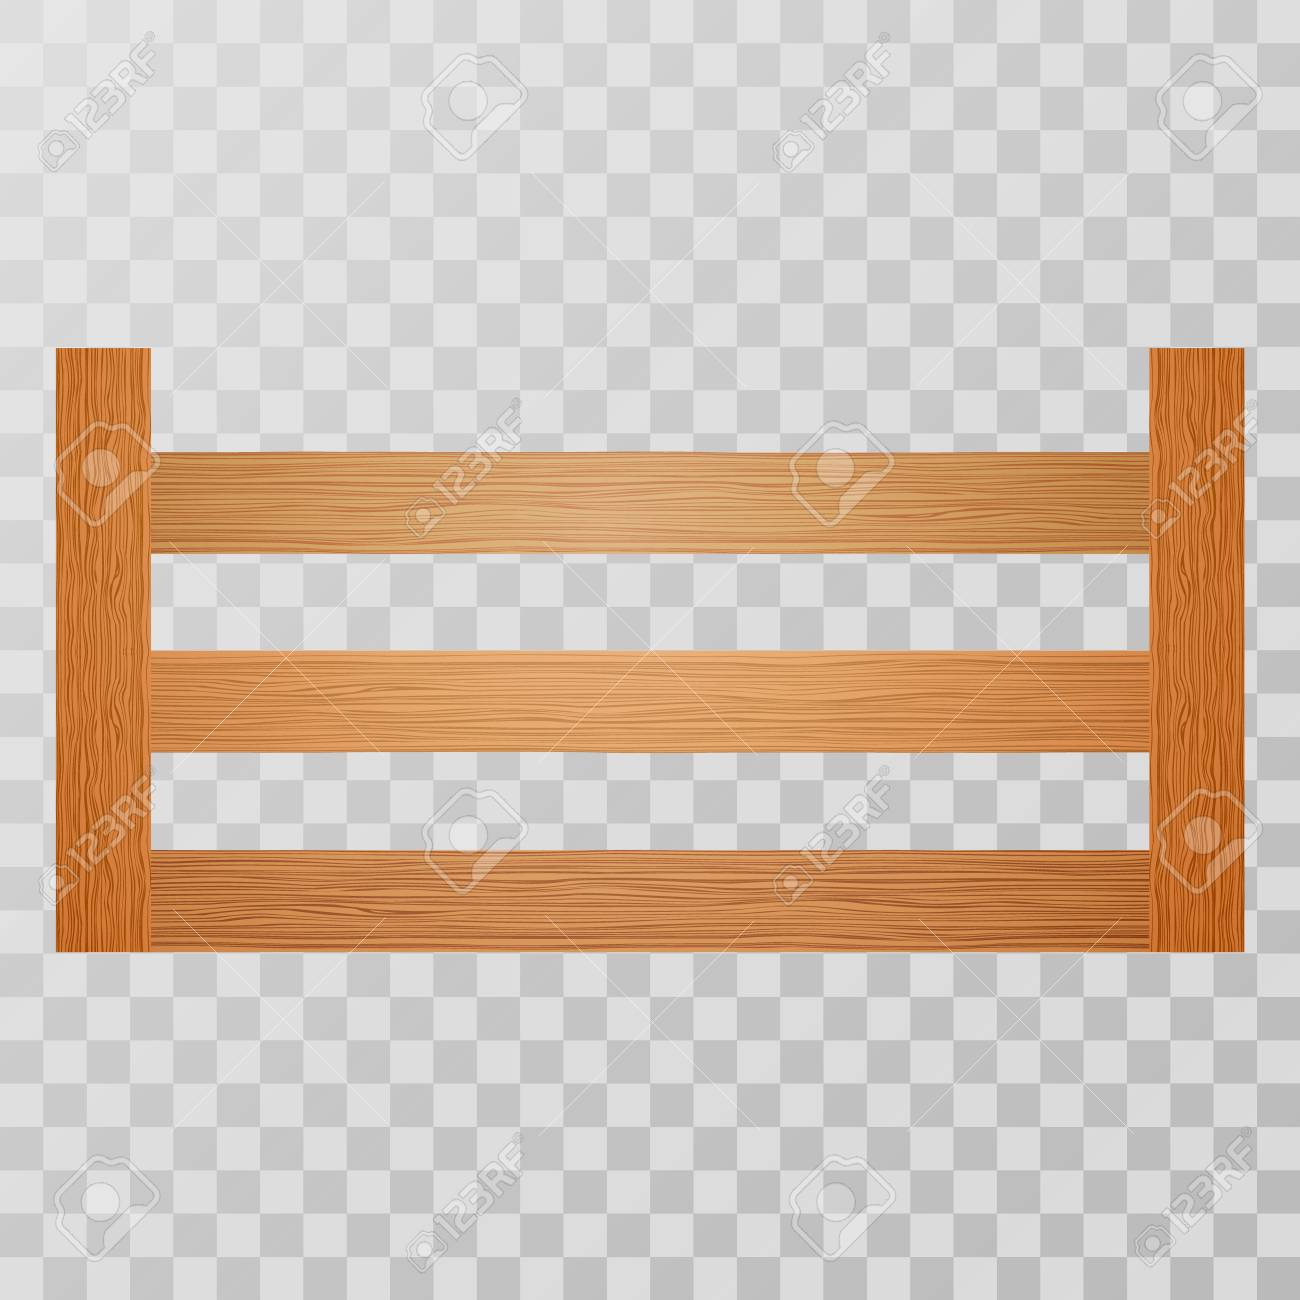 Wooden Crates For Fruits And Vegetables On Transparent Background